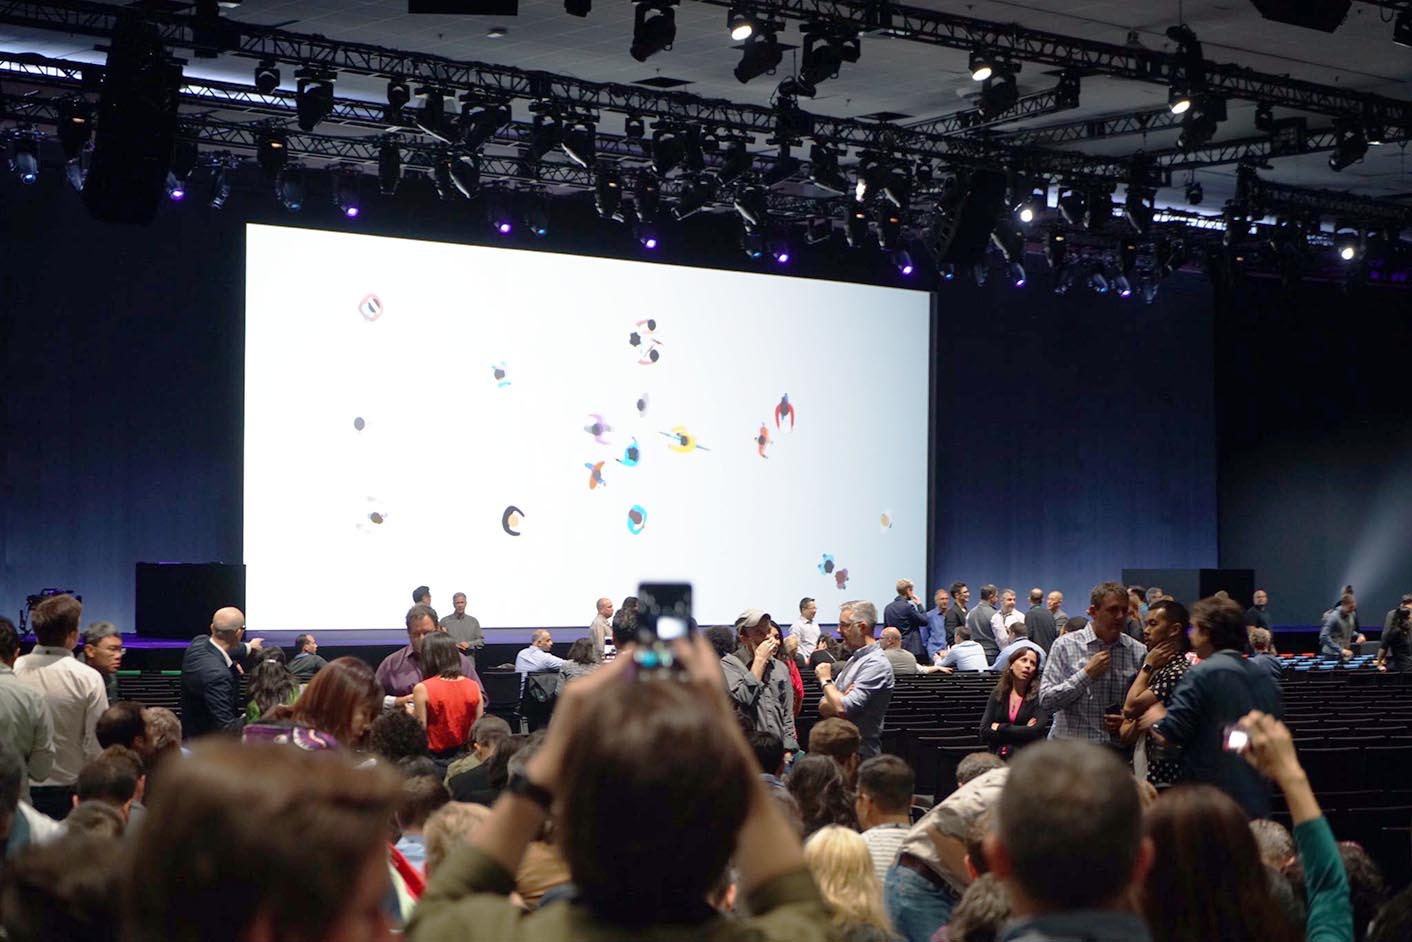 WWDC 2017 stands